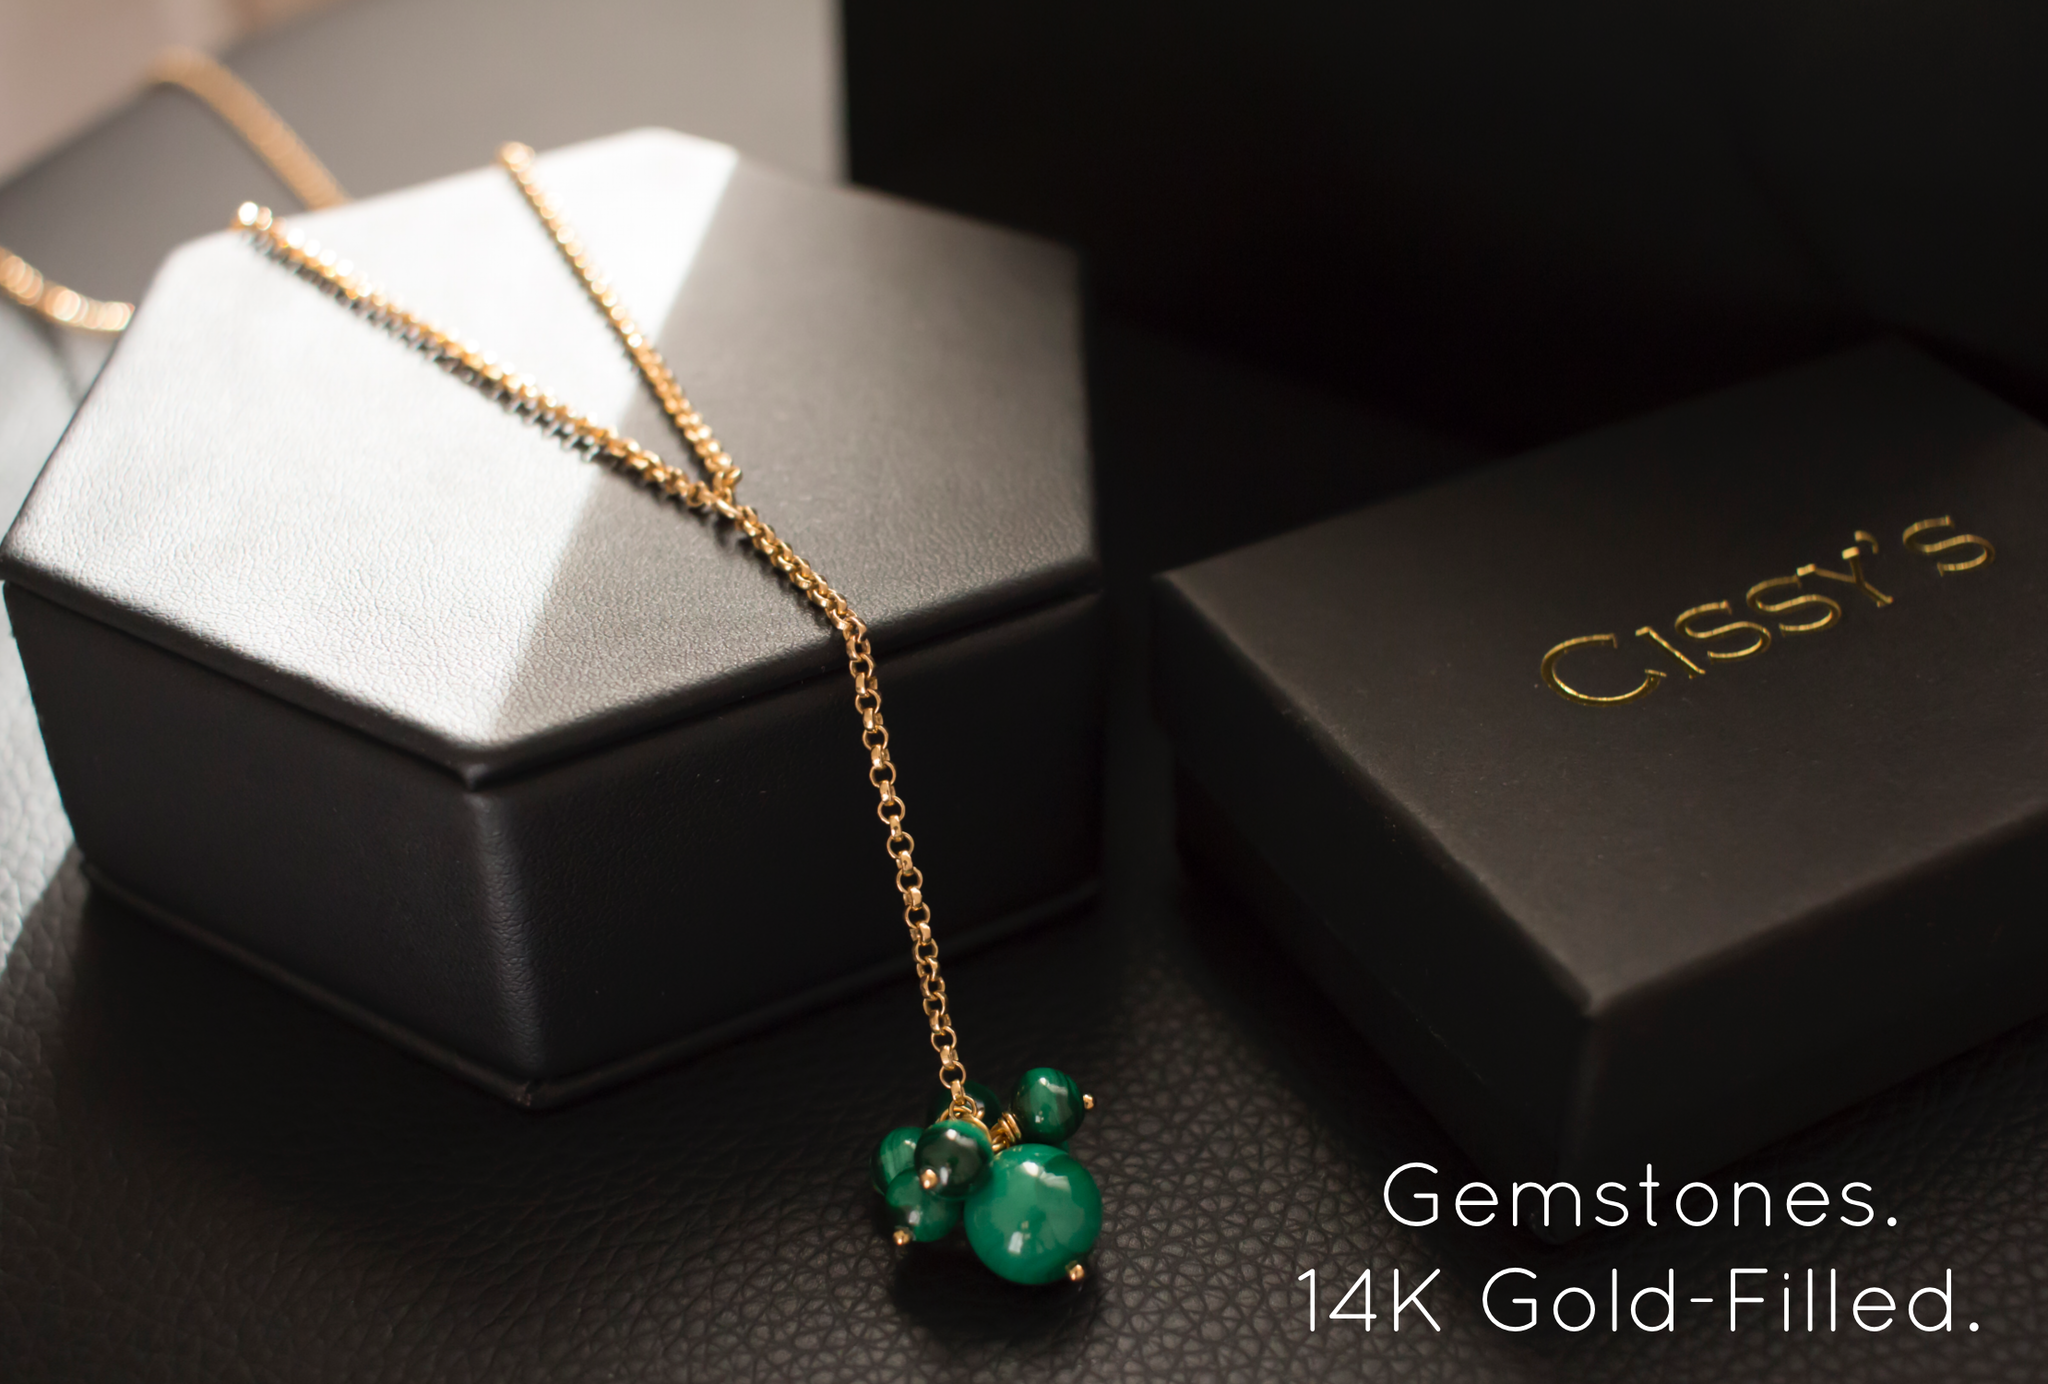 Cissy's Gemstones Jewellery. 14K Gold-Filled